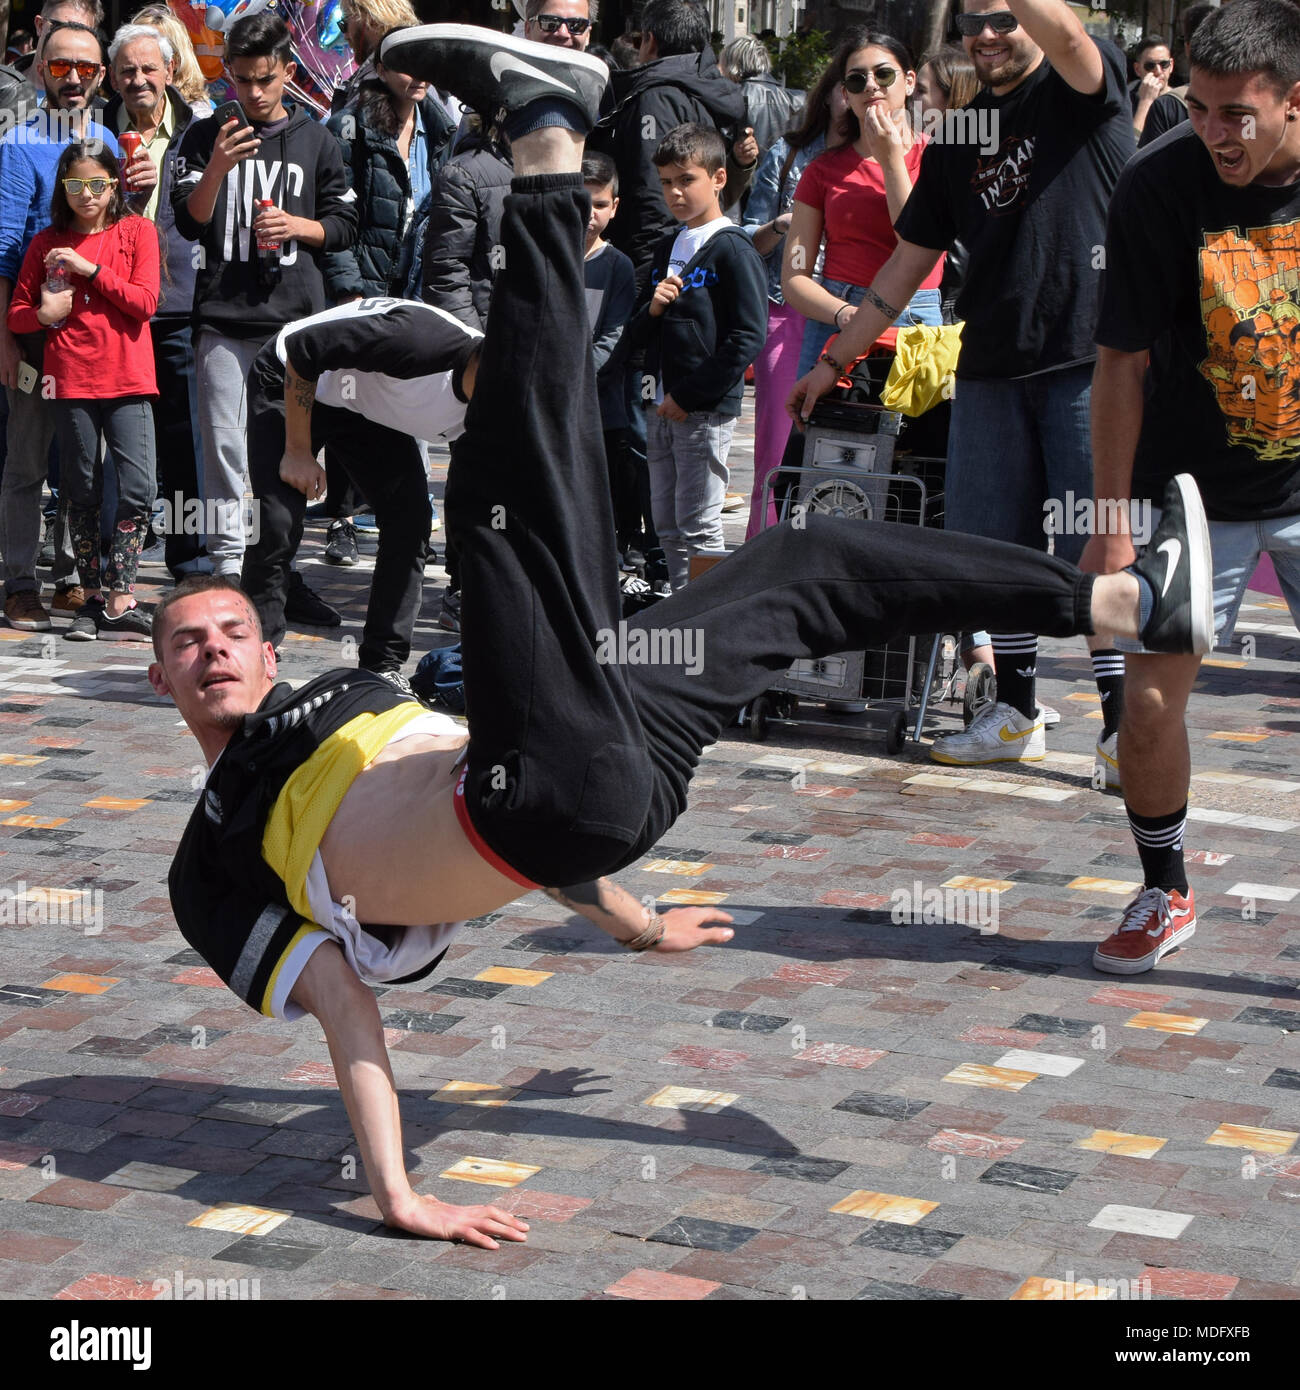 ATHENS, GREECE - APRIL 1, 2018: Breakdancer performing in a public square and crowd of people. Street dance youth culture. - Stock Image